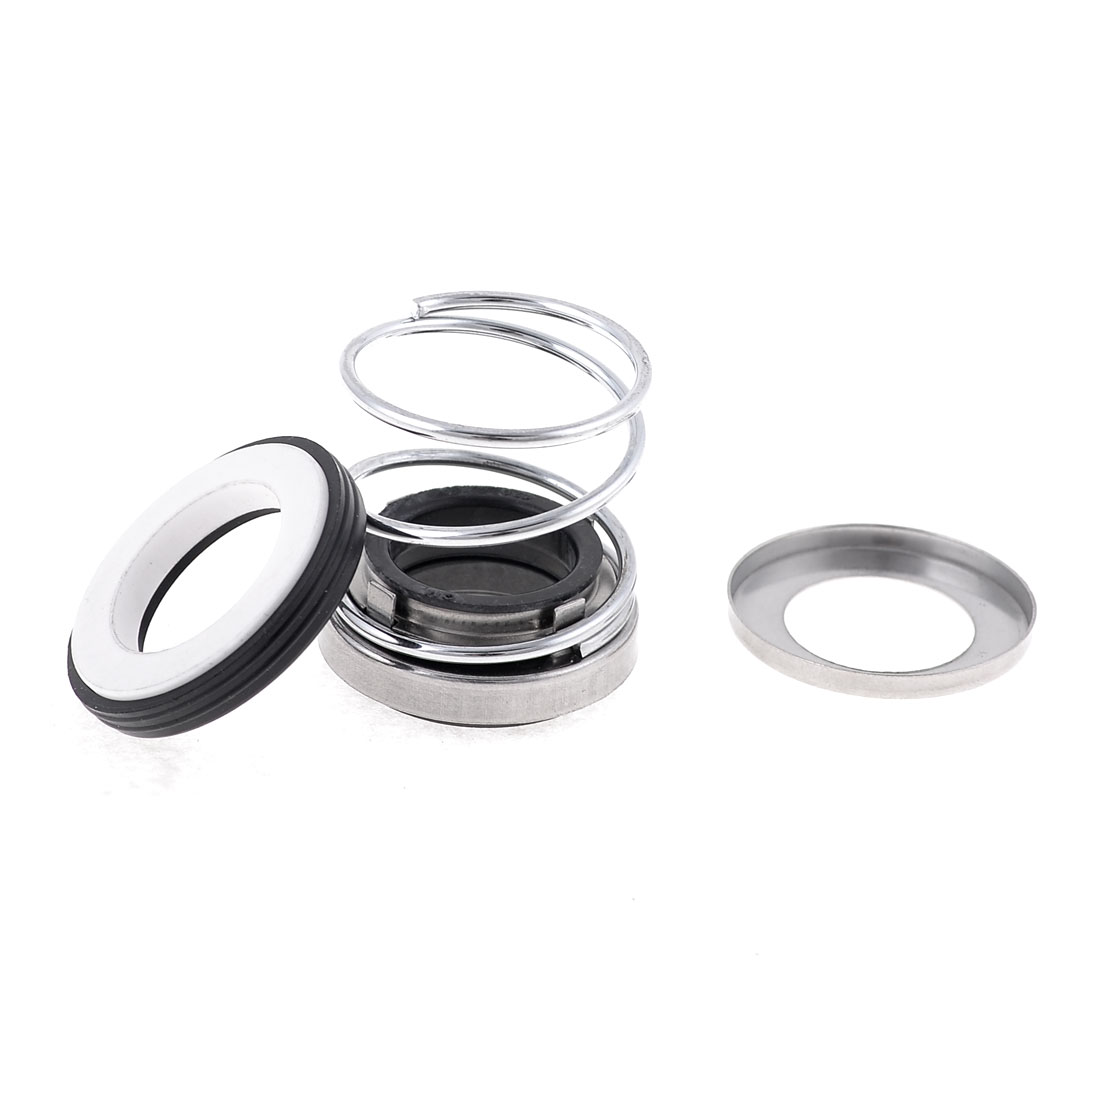 20mm Inner Dia Rubber Bellows Sliver Tone Coil Spring Mechanical Seal